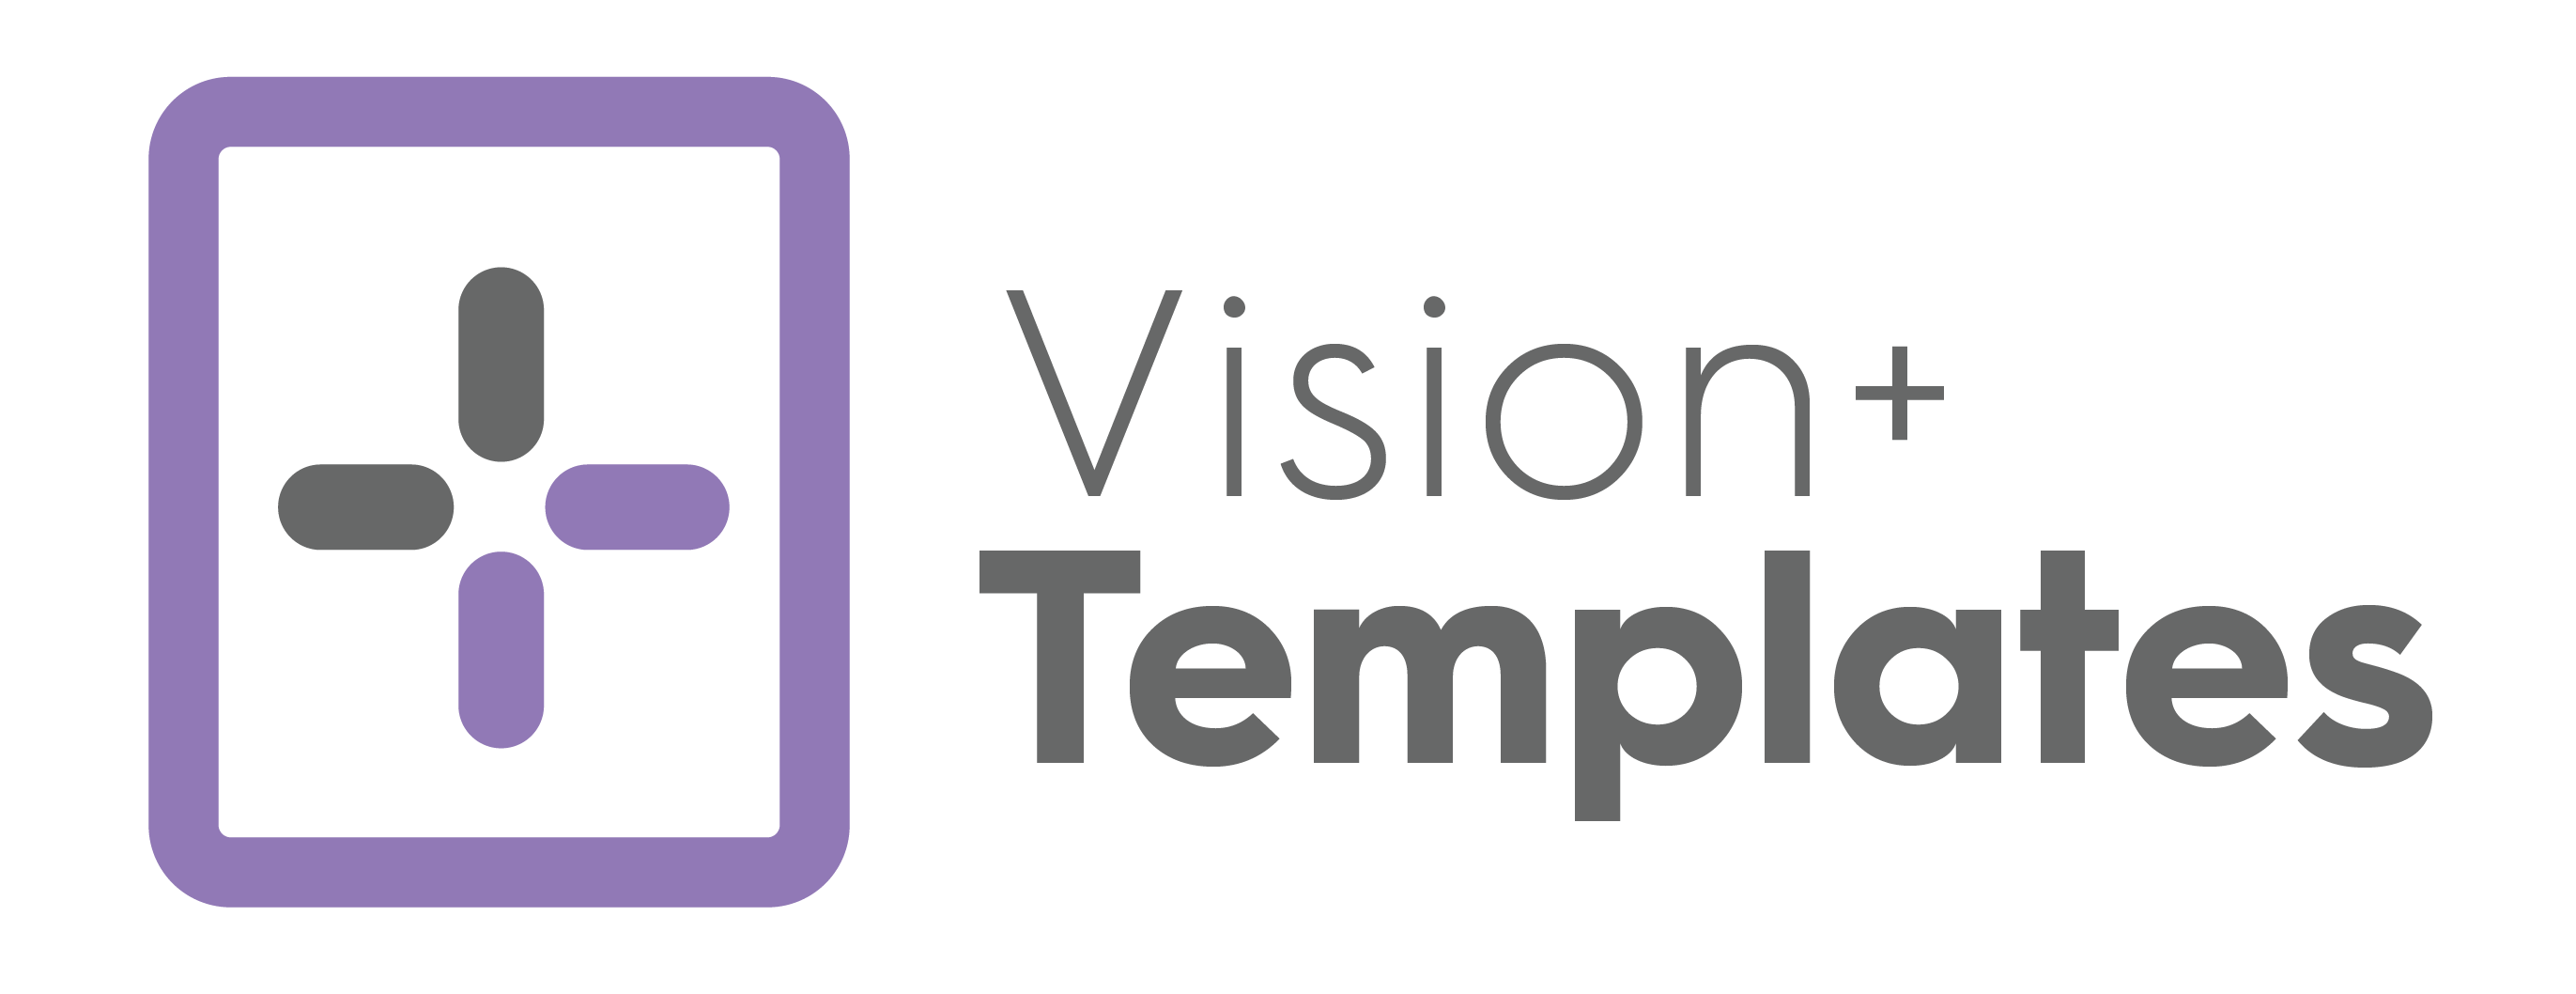 Vision Plus Templates logo